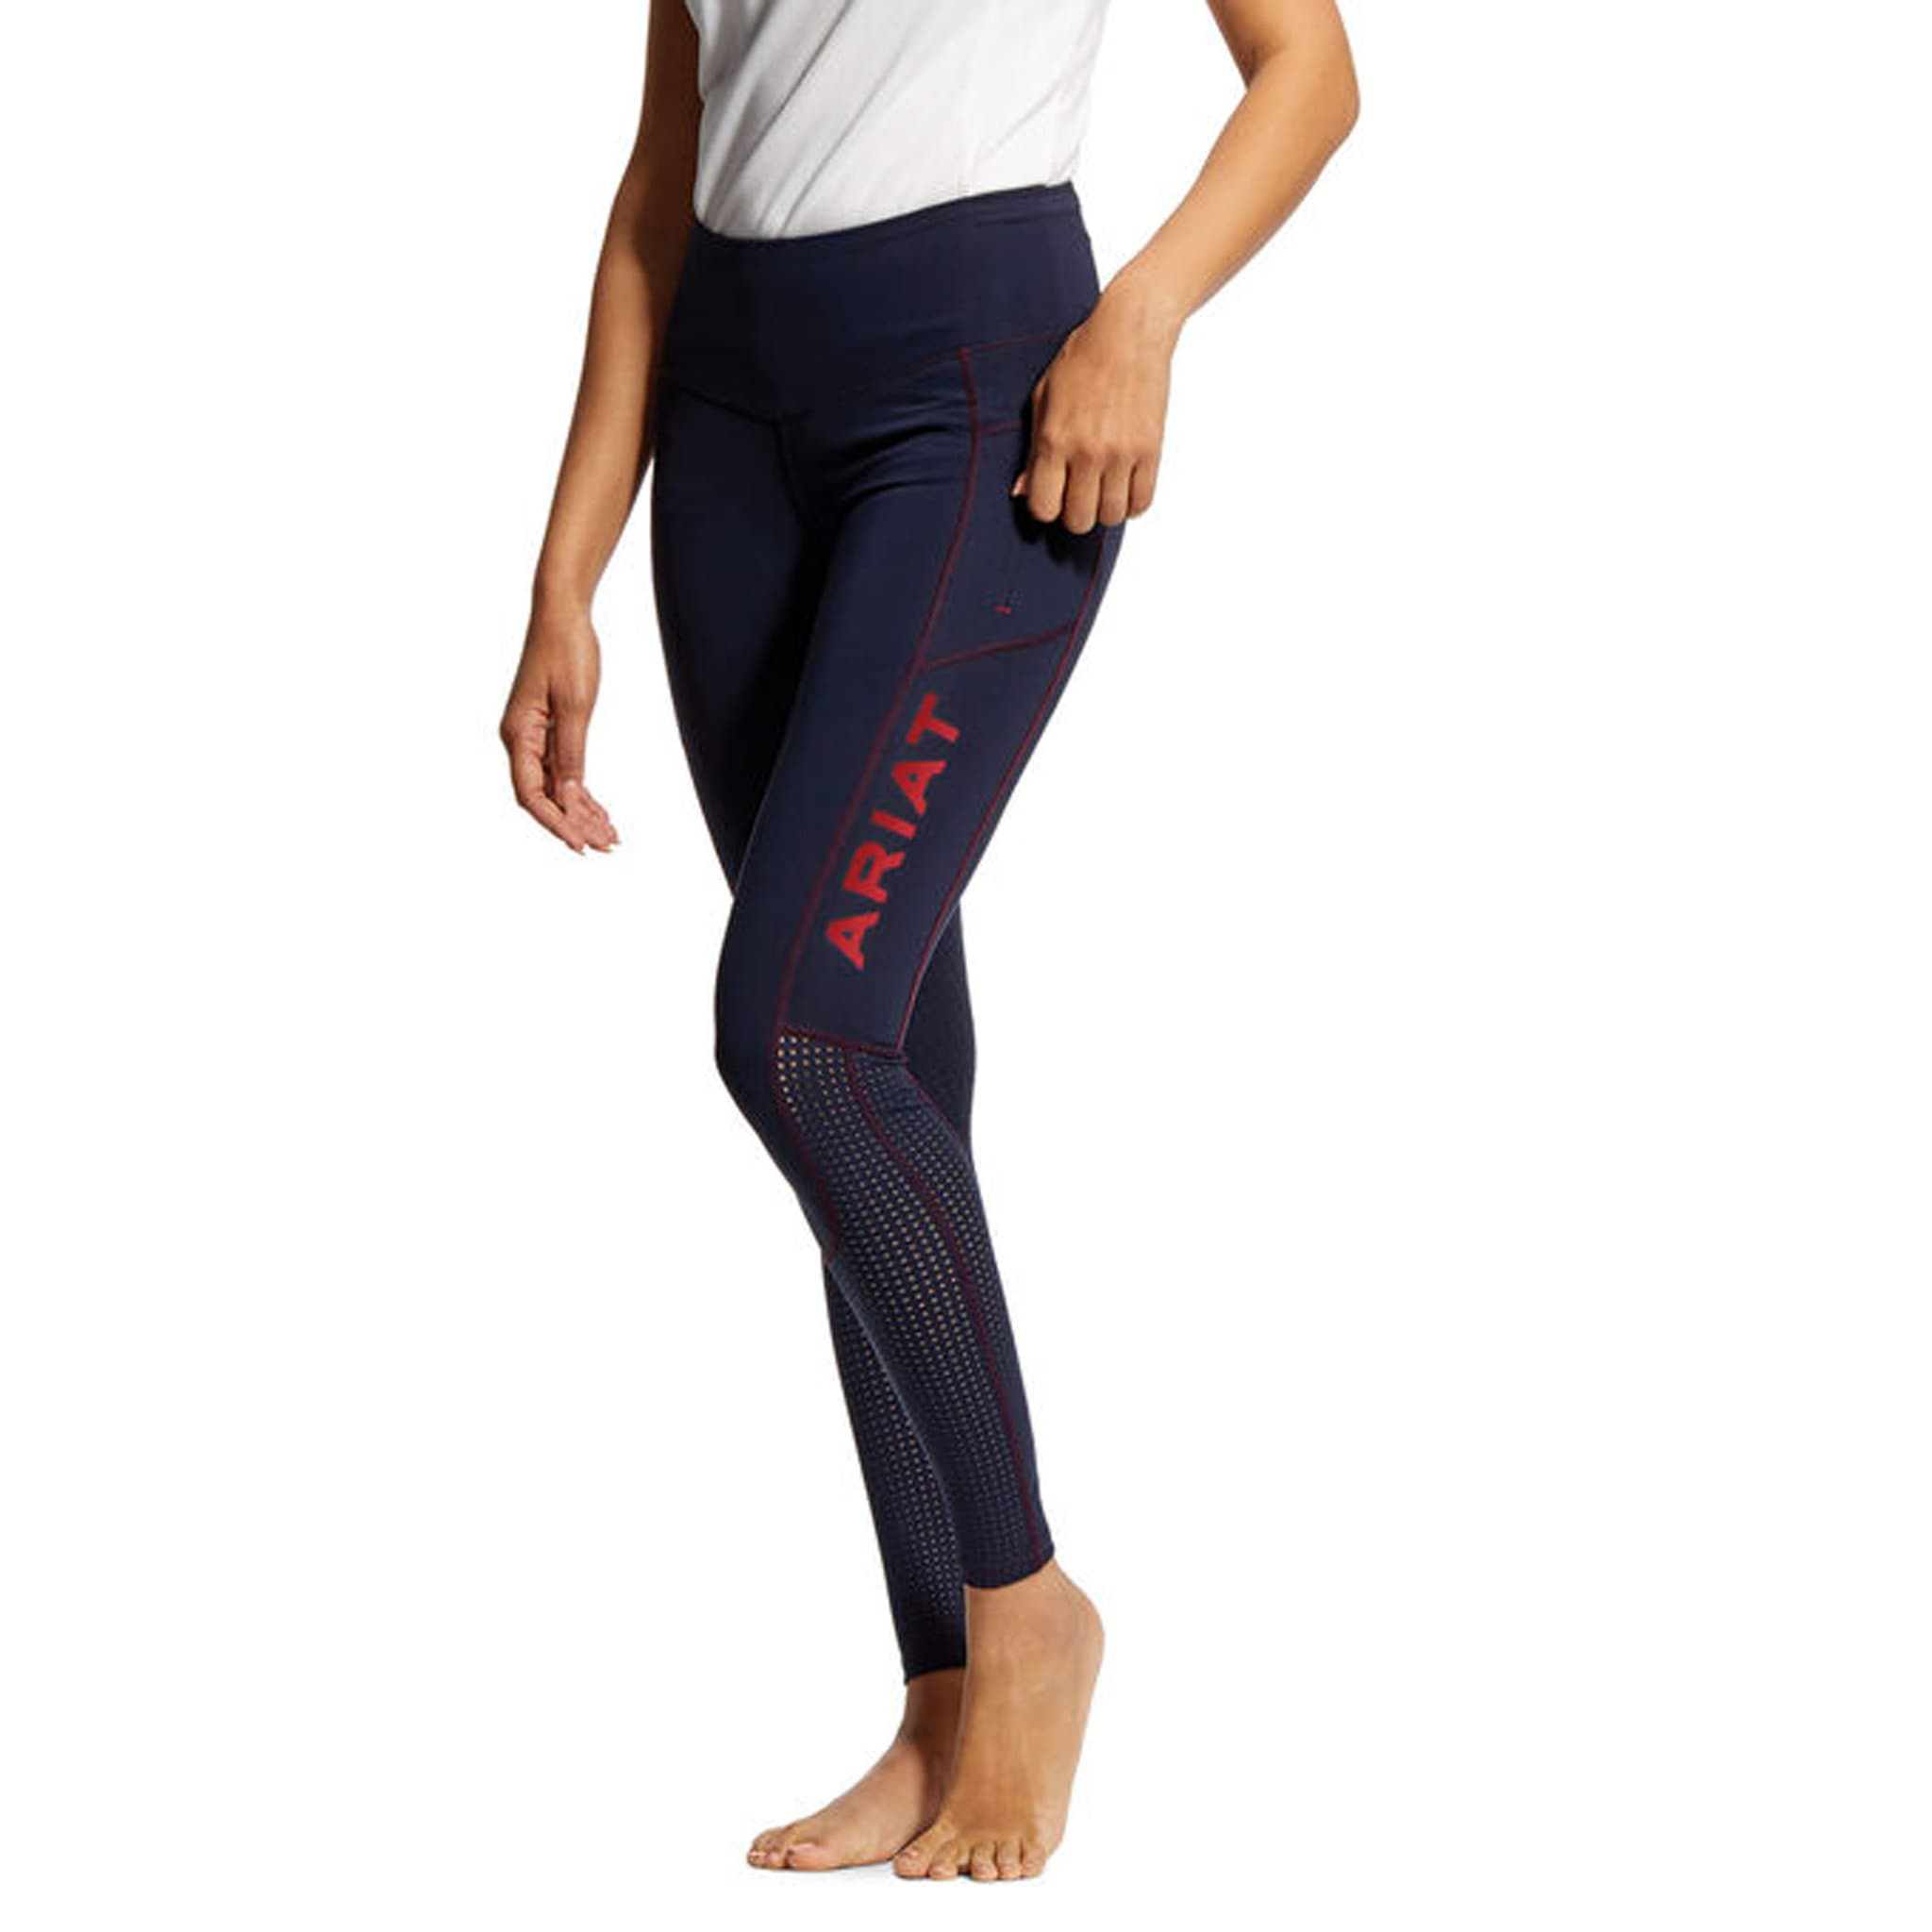 Ariat Eos Full Seat Tights Ariat Team 10030492